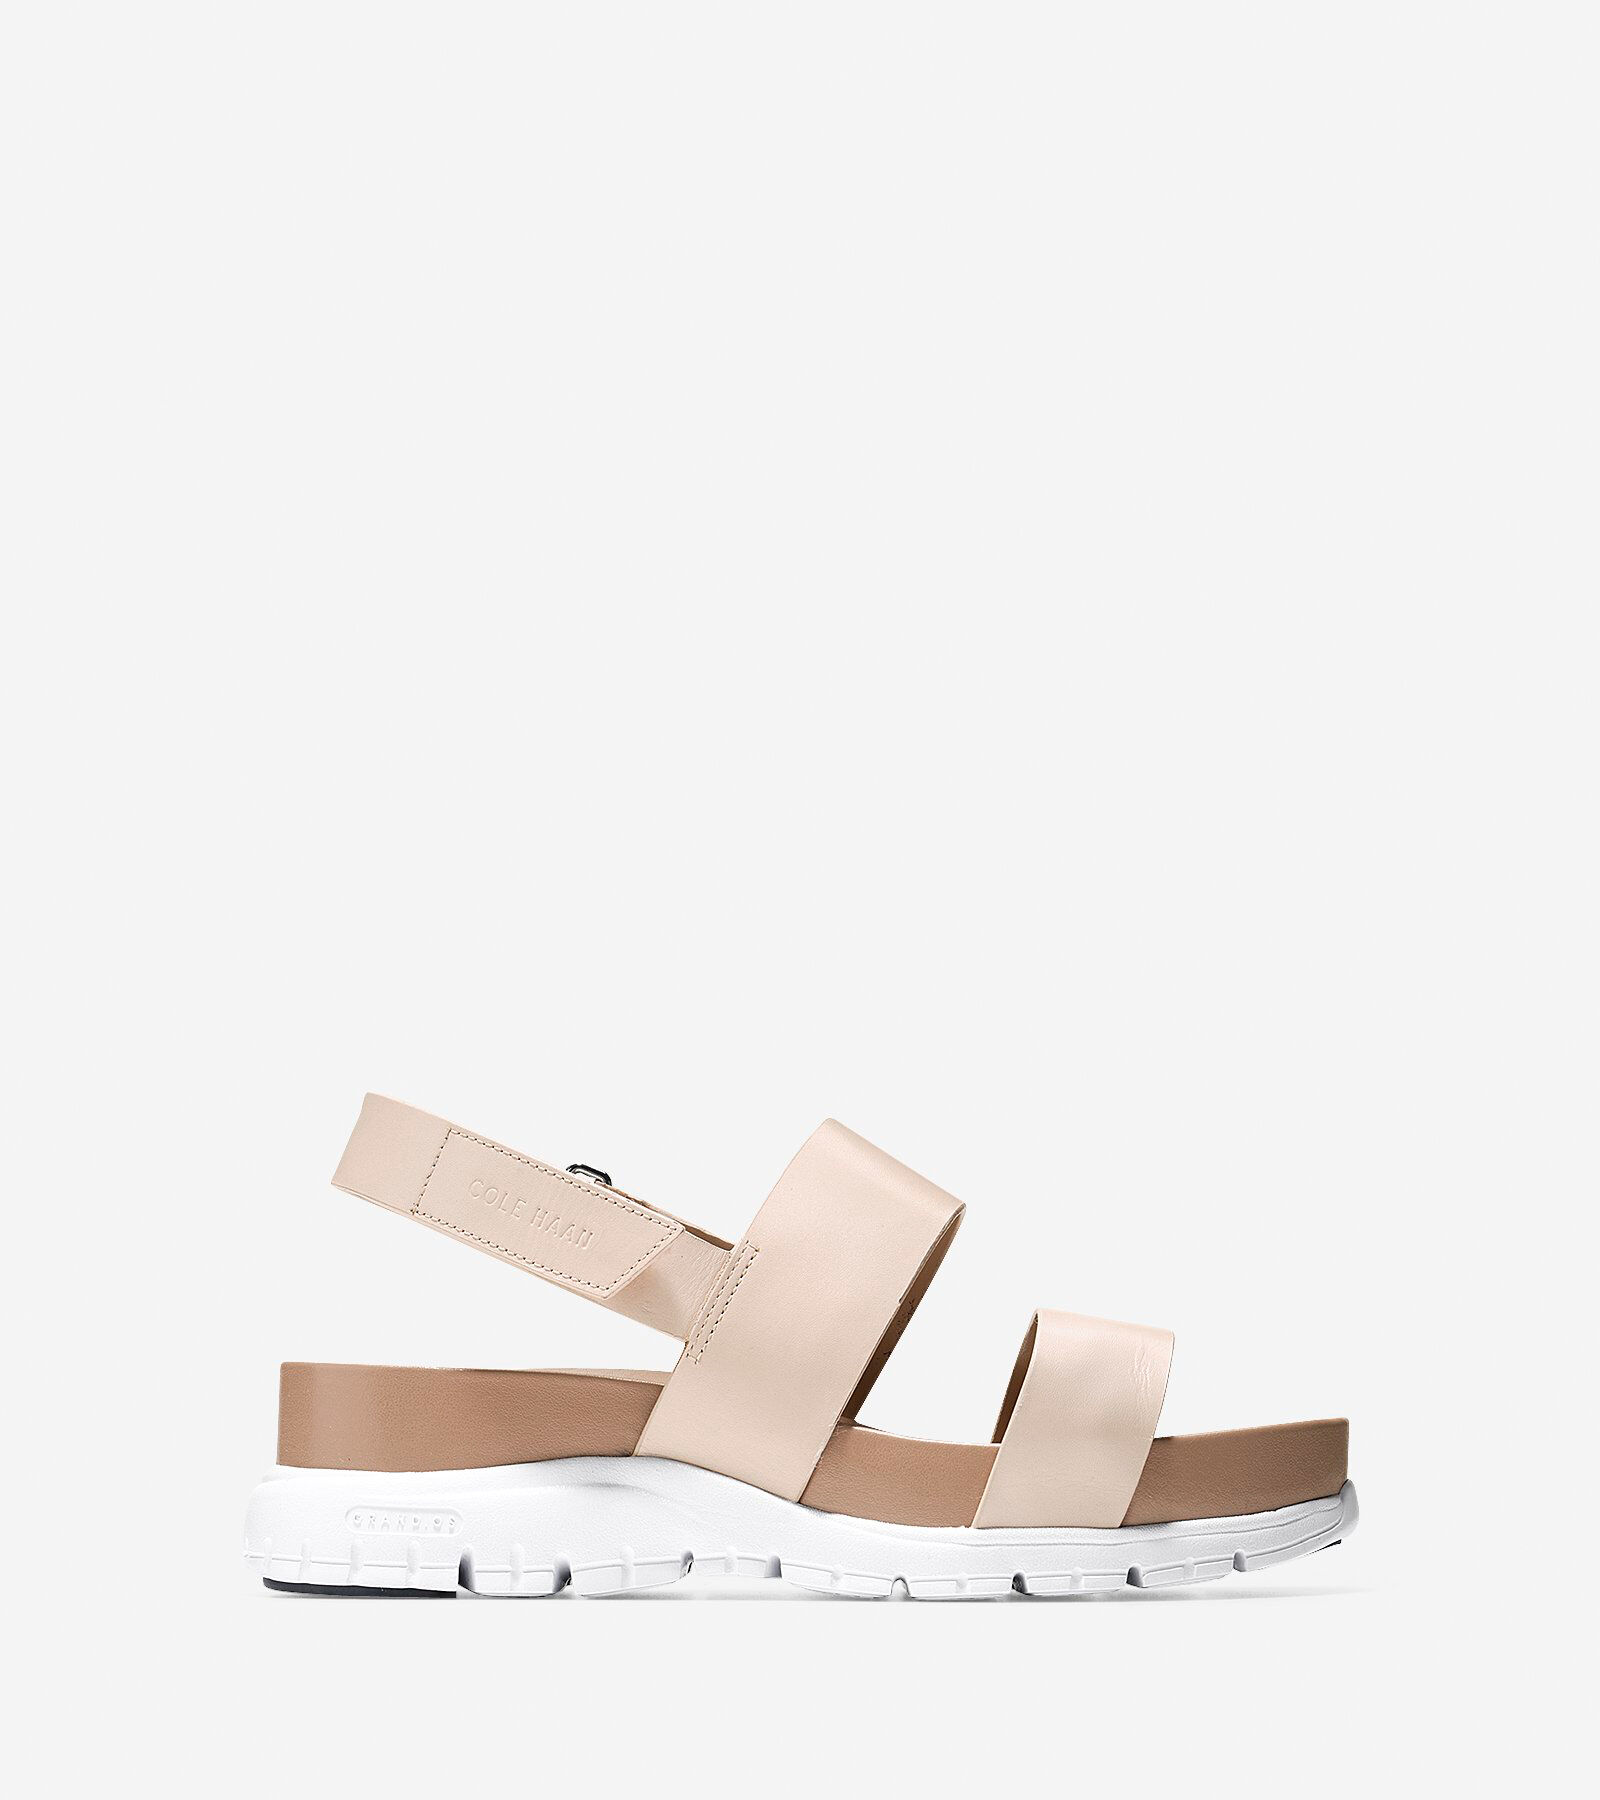 pictures for sale Cole Haan Wedge Slide Sandals sale cost the cheapest cheap online cheap sale low shipping with credit card cheap price w70pRd